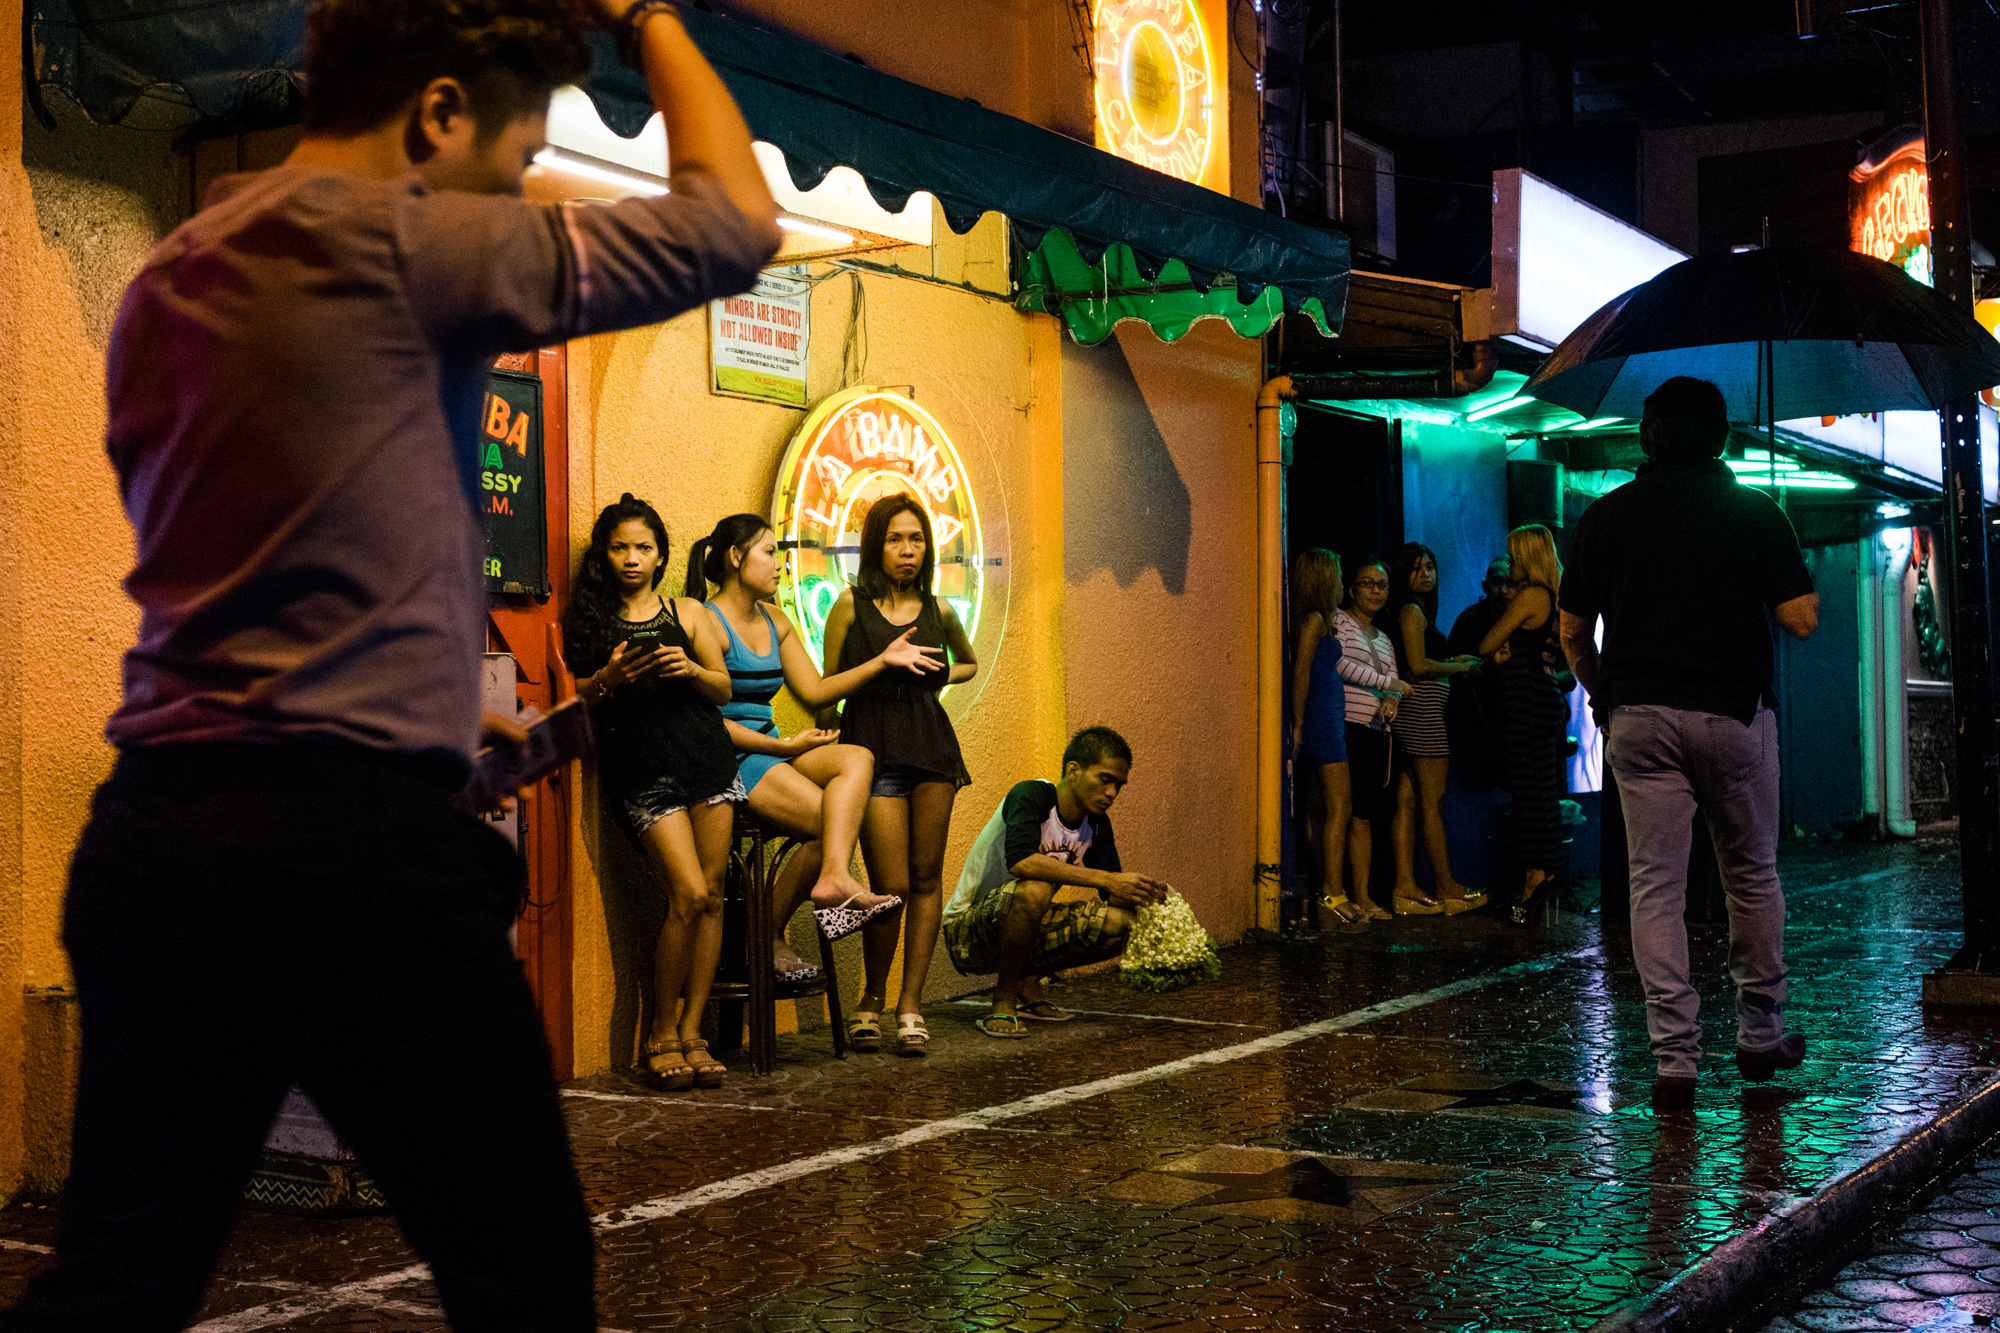 A scene from Fields Avenue, the red light district in Angeles City, notorious for its sex tourism. (Photo by Hannah Reyes Morales/GroundTruth)